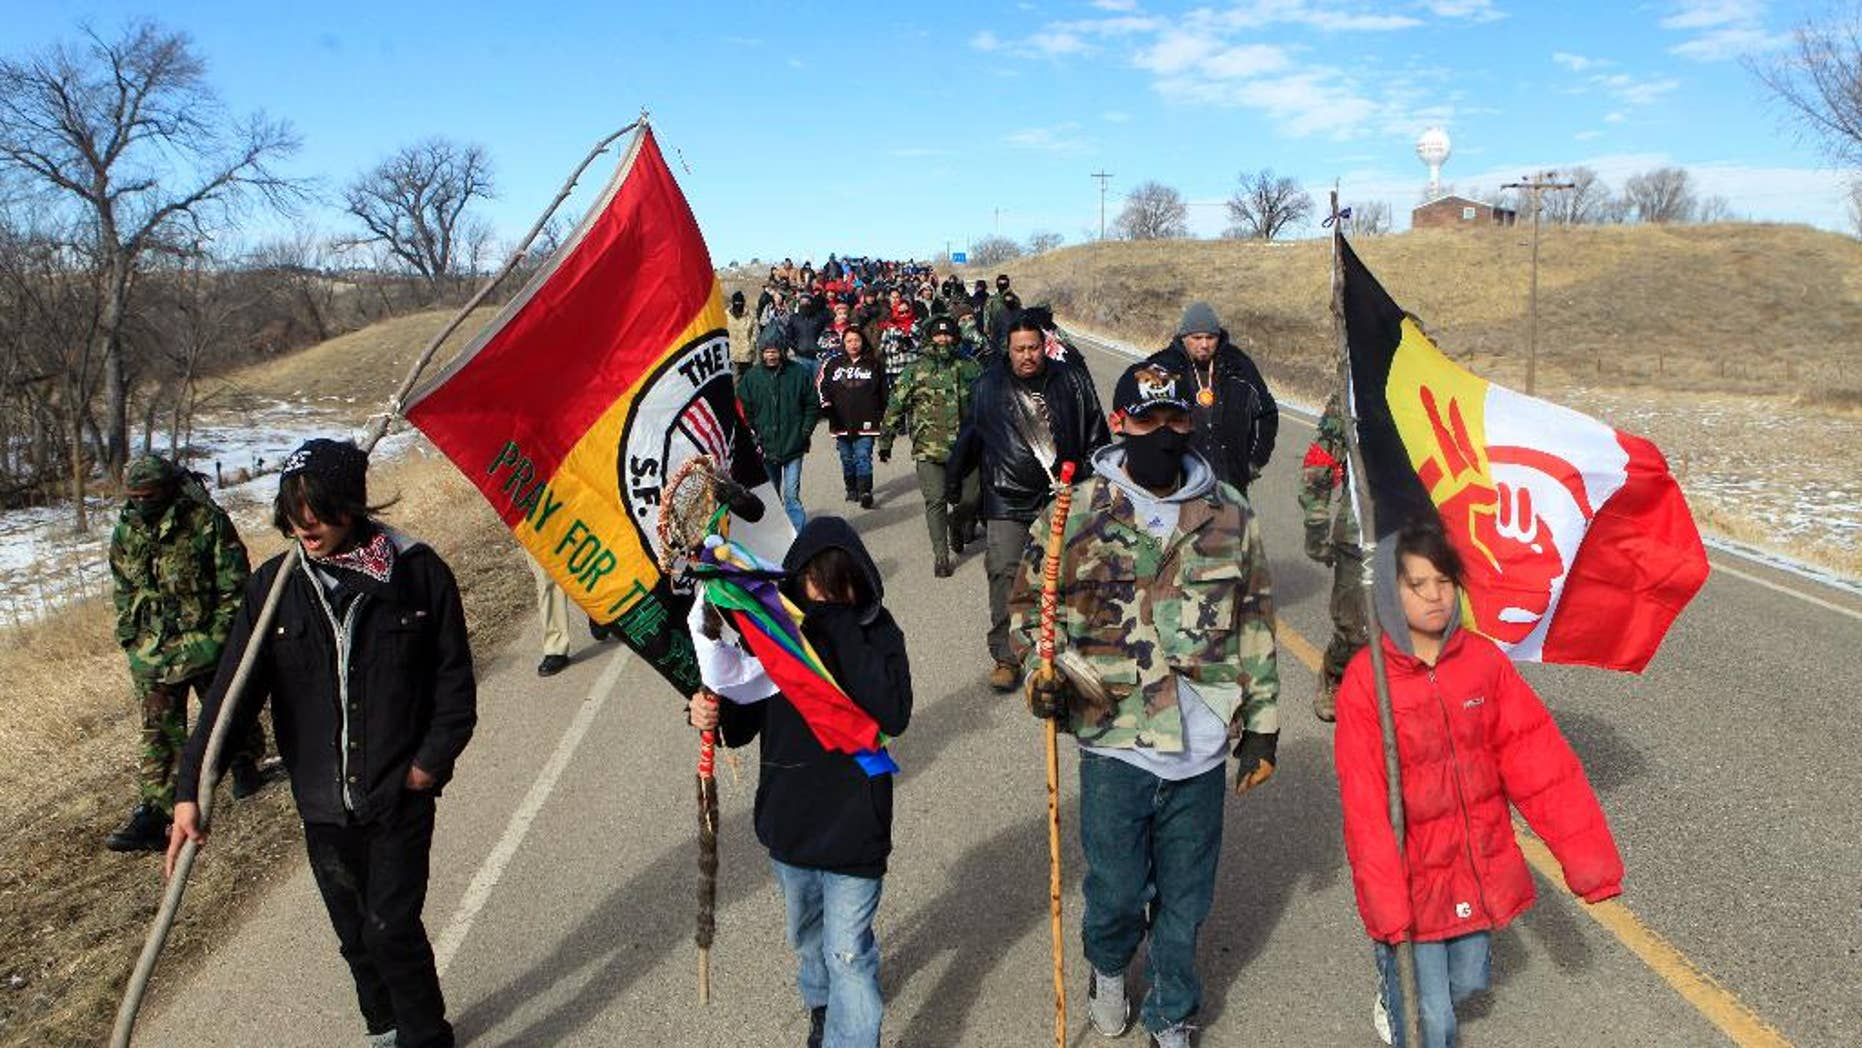 In this Feb. 27, 2014 photo, more than 100 people walk to Wounded Knee during the liberation anniversary of the famous massacre on the Pine Ridge Indian Reservation in South Dakota. Somewhere between 16,000 and 30,000 members of the Oglala Sioux Tribe live on the reservation which includes the county with the highest poverty rate in the U.S., and some of the worst rates of alcoholism and drug abuse, violence and unemployment. (AP Photo/Rapid City Journal, Chris Huber)